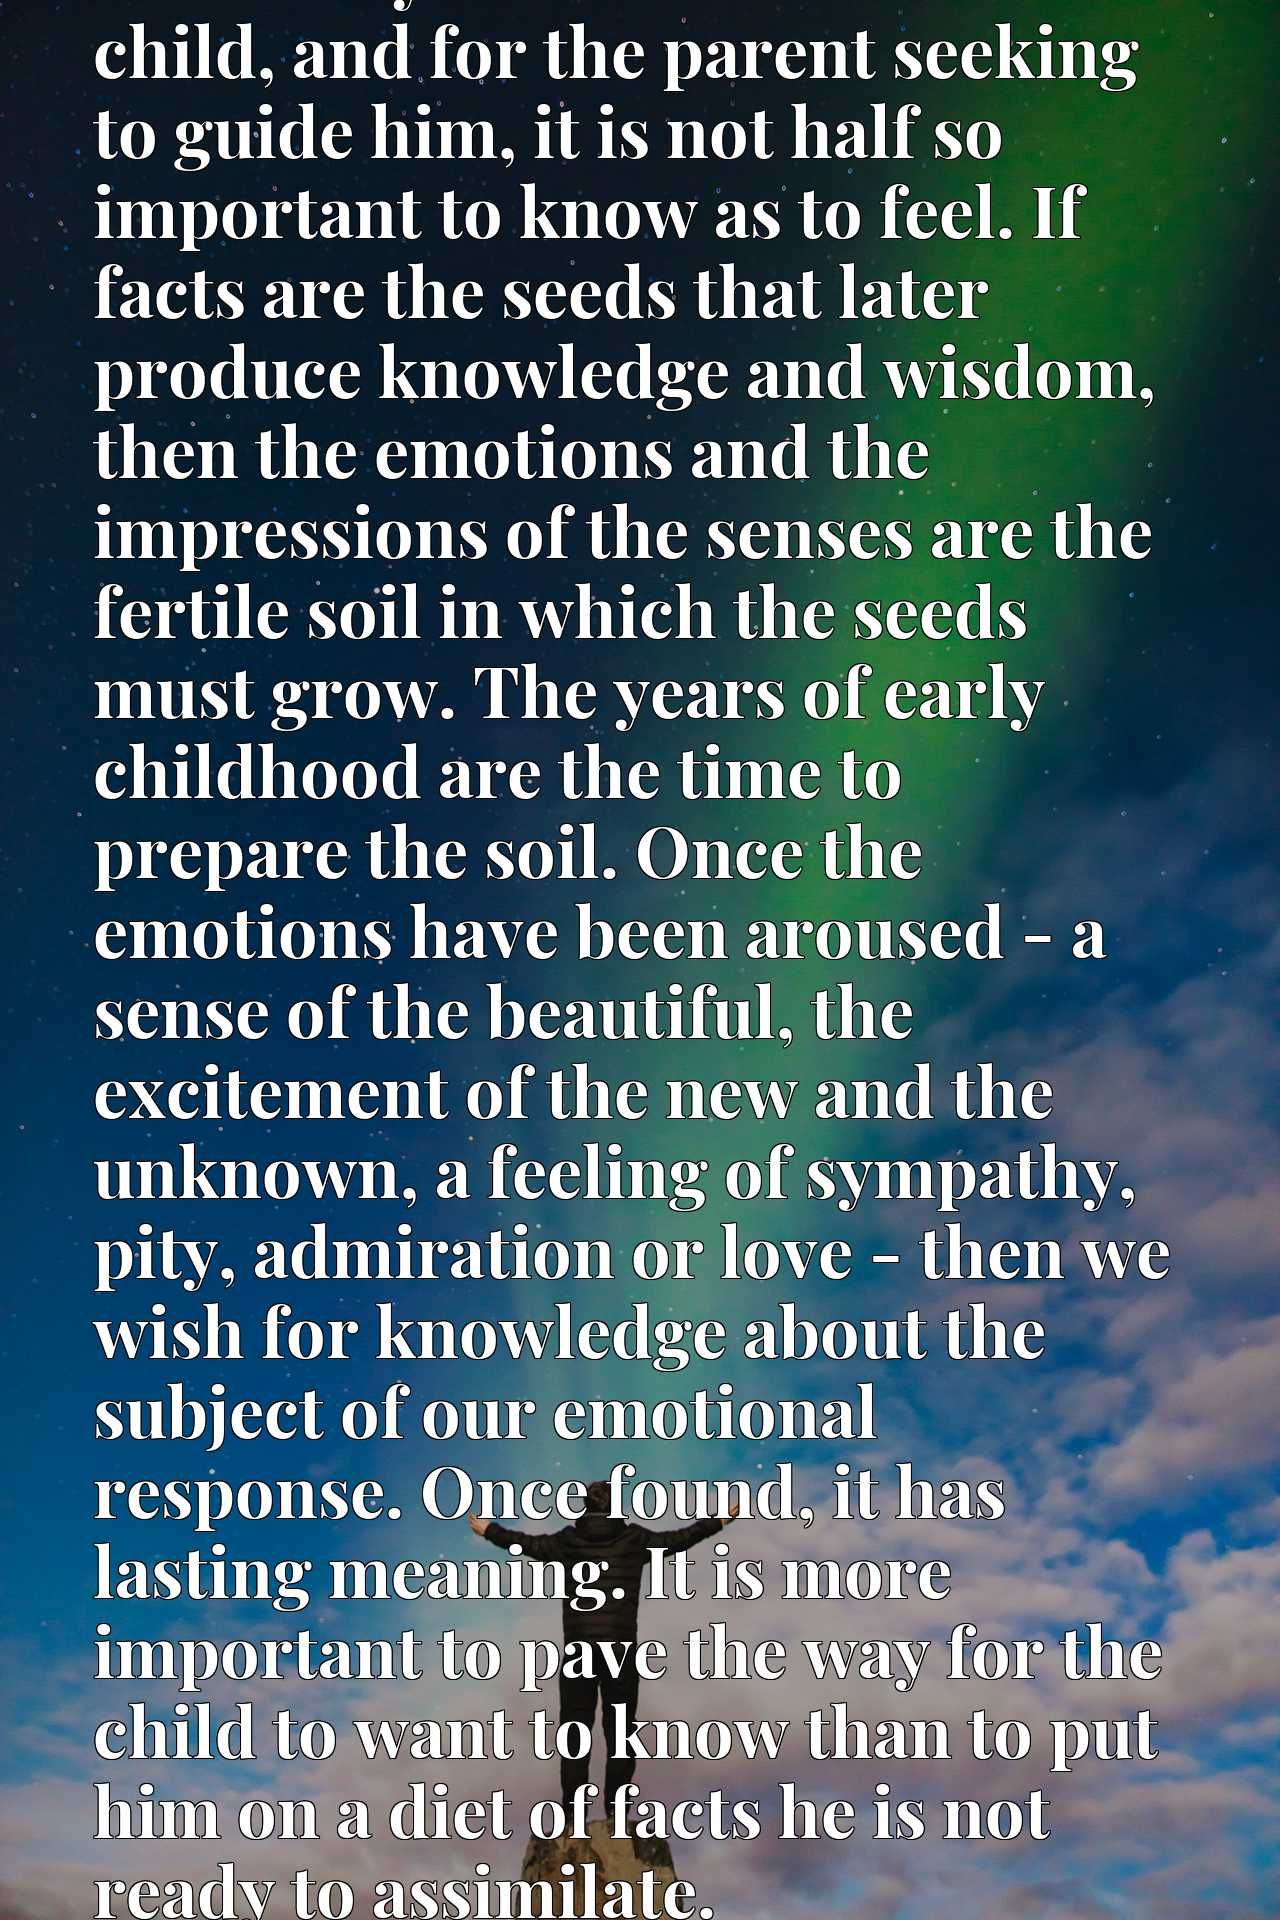 I sincerely believe that for the child, and for the parent seeking to guide him, it is not half so important to know as to feel. If facts are the seeds that later produce knowledge and wisdom, then the emotions and the impressions of the senses are the fertile soil in which the seeds must grow. The years of early childhood are the time to prepare the soil. Once the emotions have been aroused - a sense of the beautiful, the excitement of the new and the unknown, a feeling of sympathy, pity, admiration or love - then we wish for knowledge about the subject of our emotional response. Once found, it has lasting meaning. It is more important to pave the way for the child to want to know than to put him on a diet of facts he is not ready to assimilate.